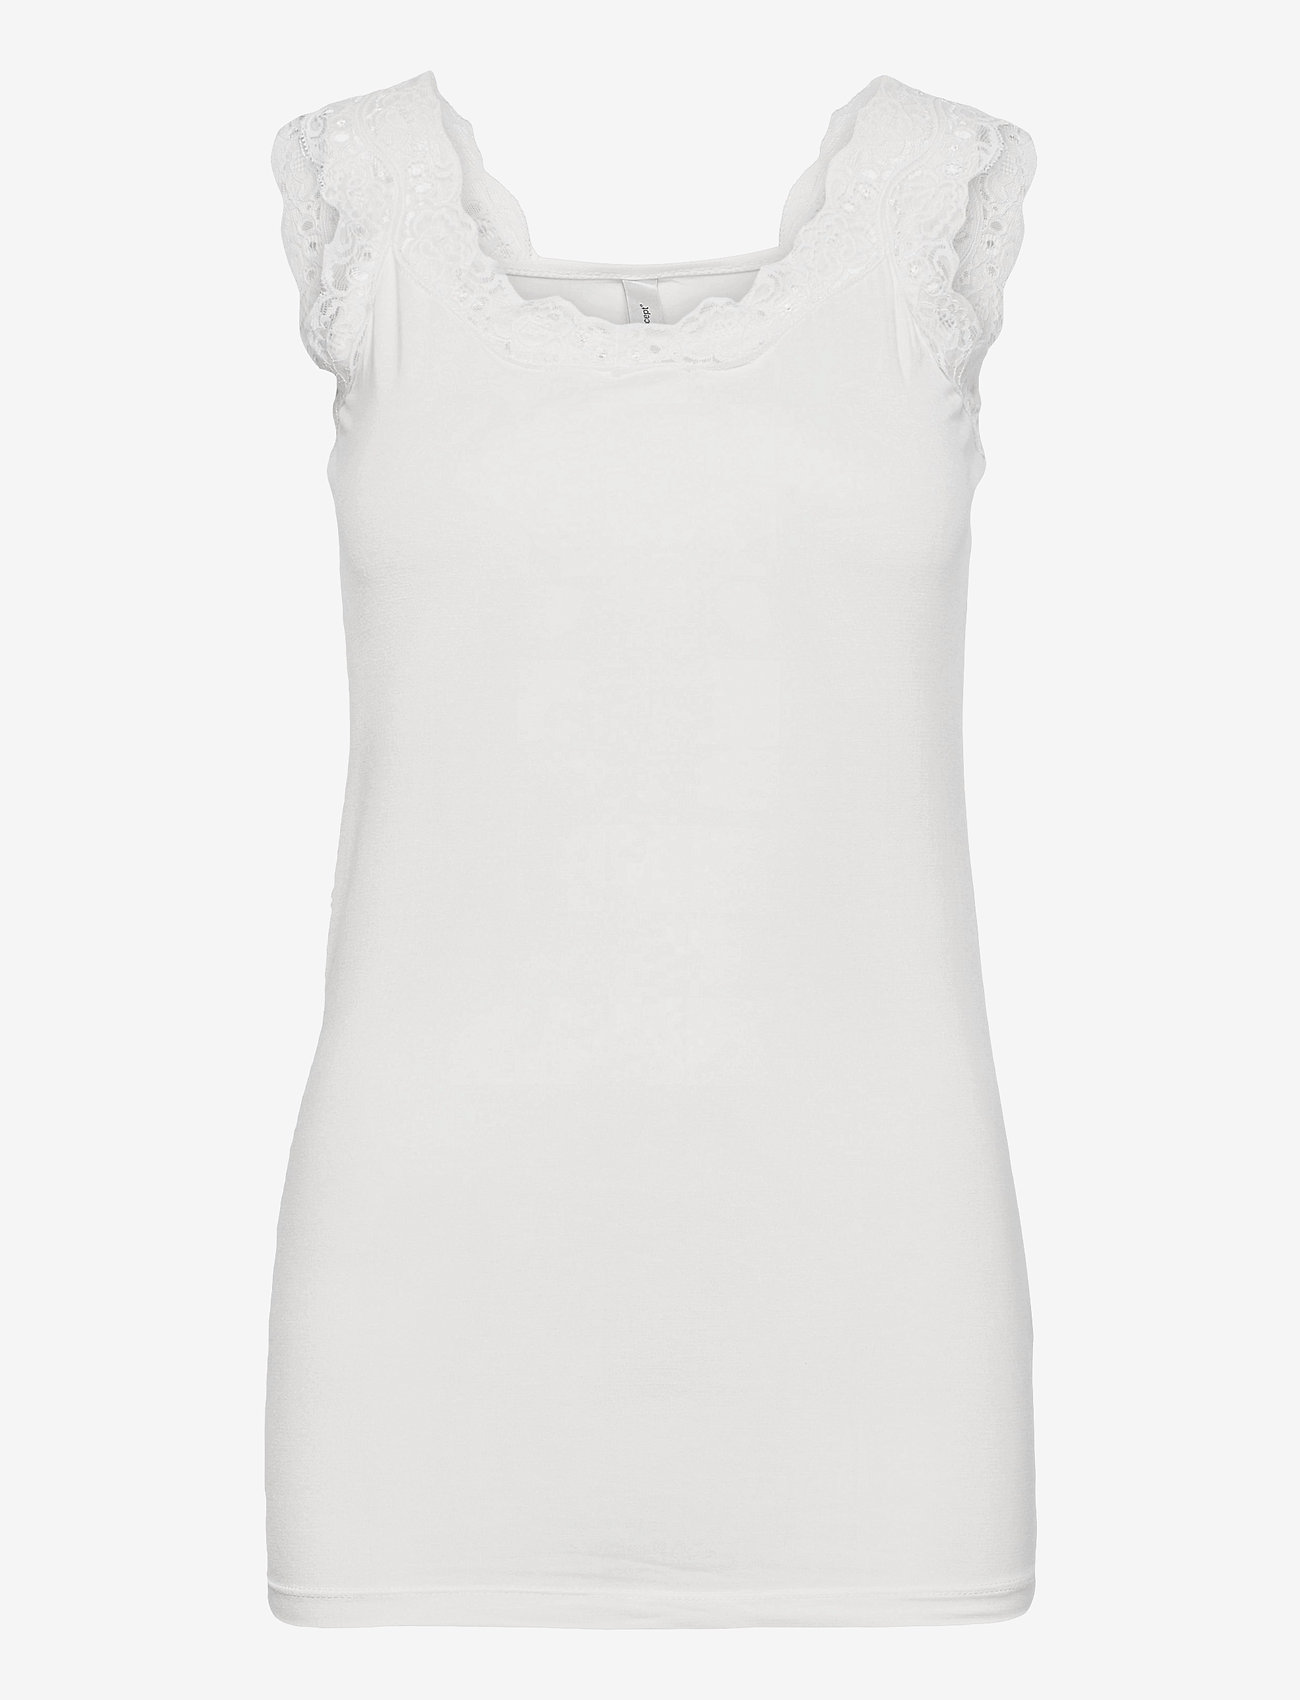 Soyaconcept - SC-MARICA - t-shirt & tops - offwhite - 0